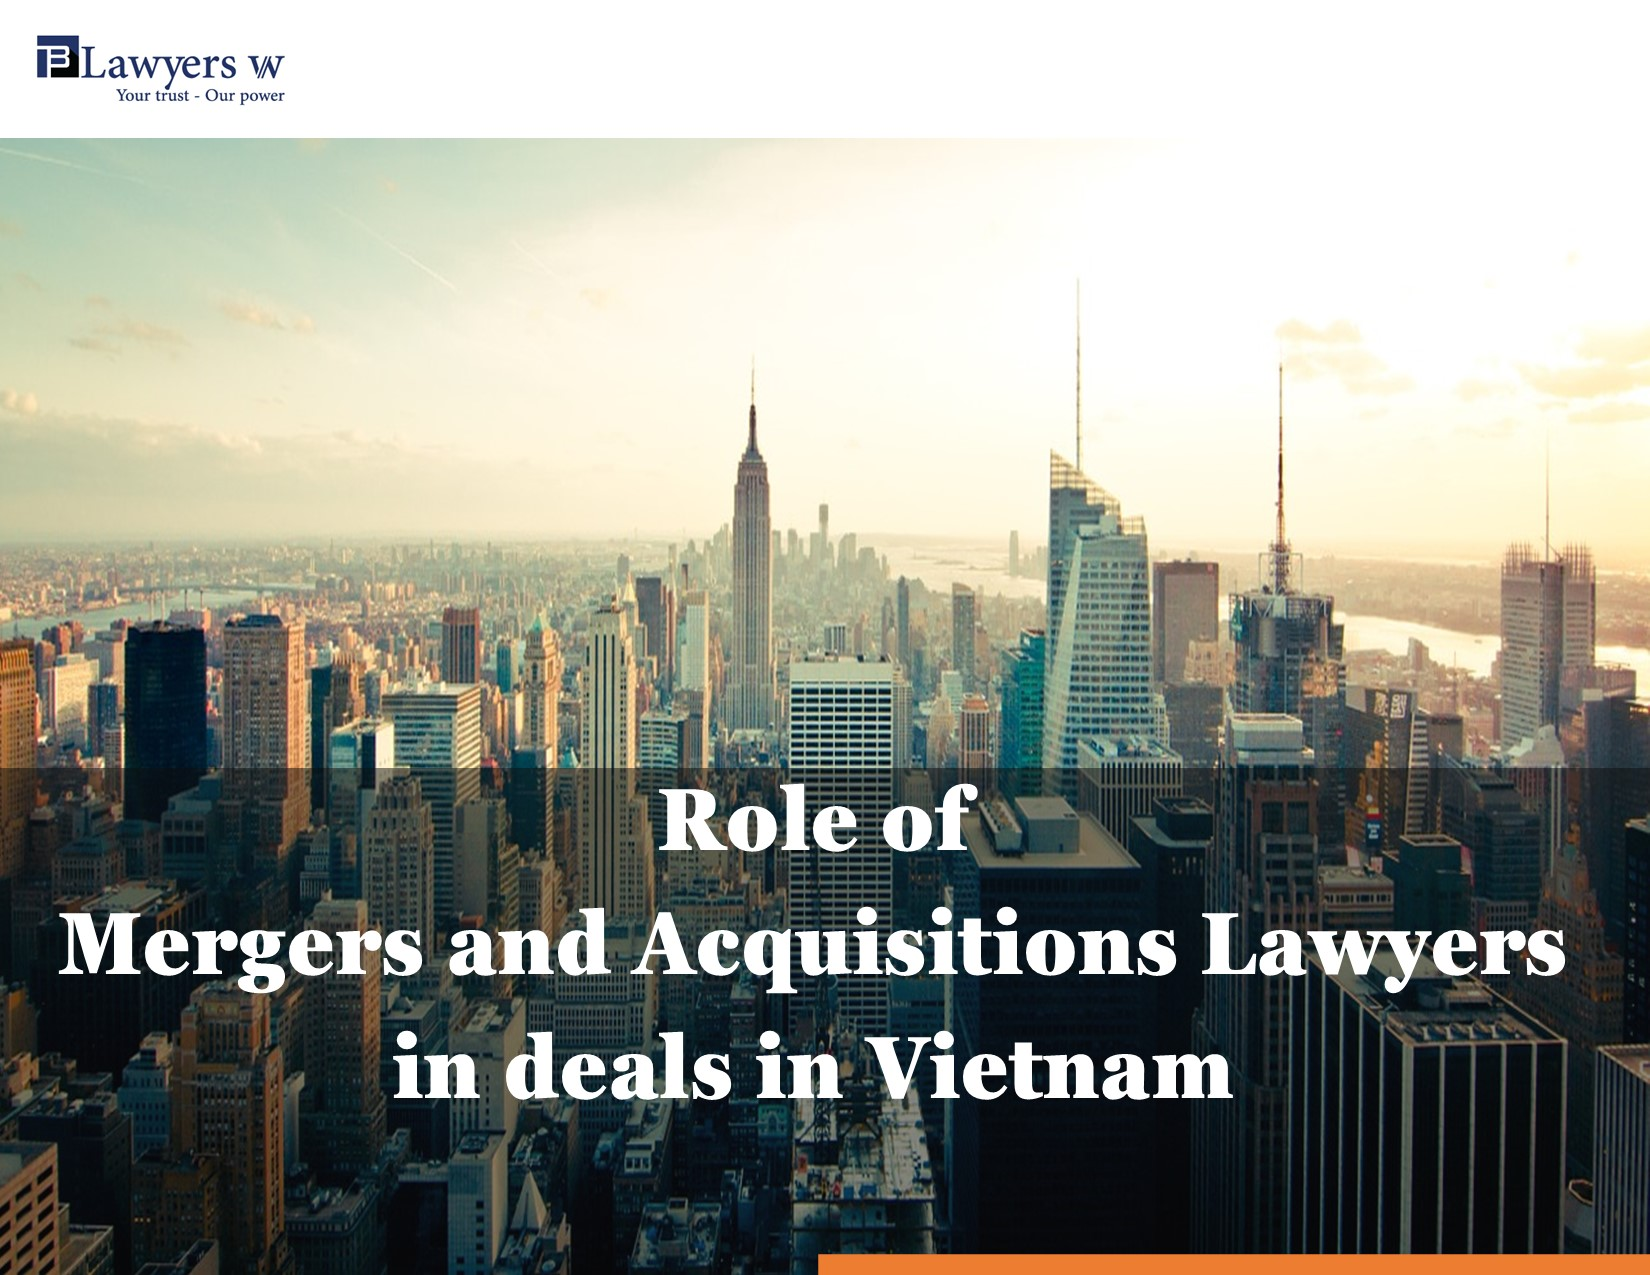 Mergers and Acquisitions lawyers in Vietnam